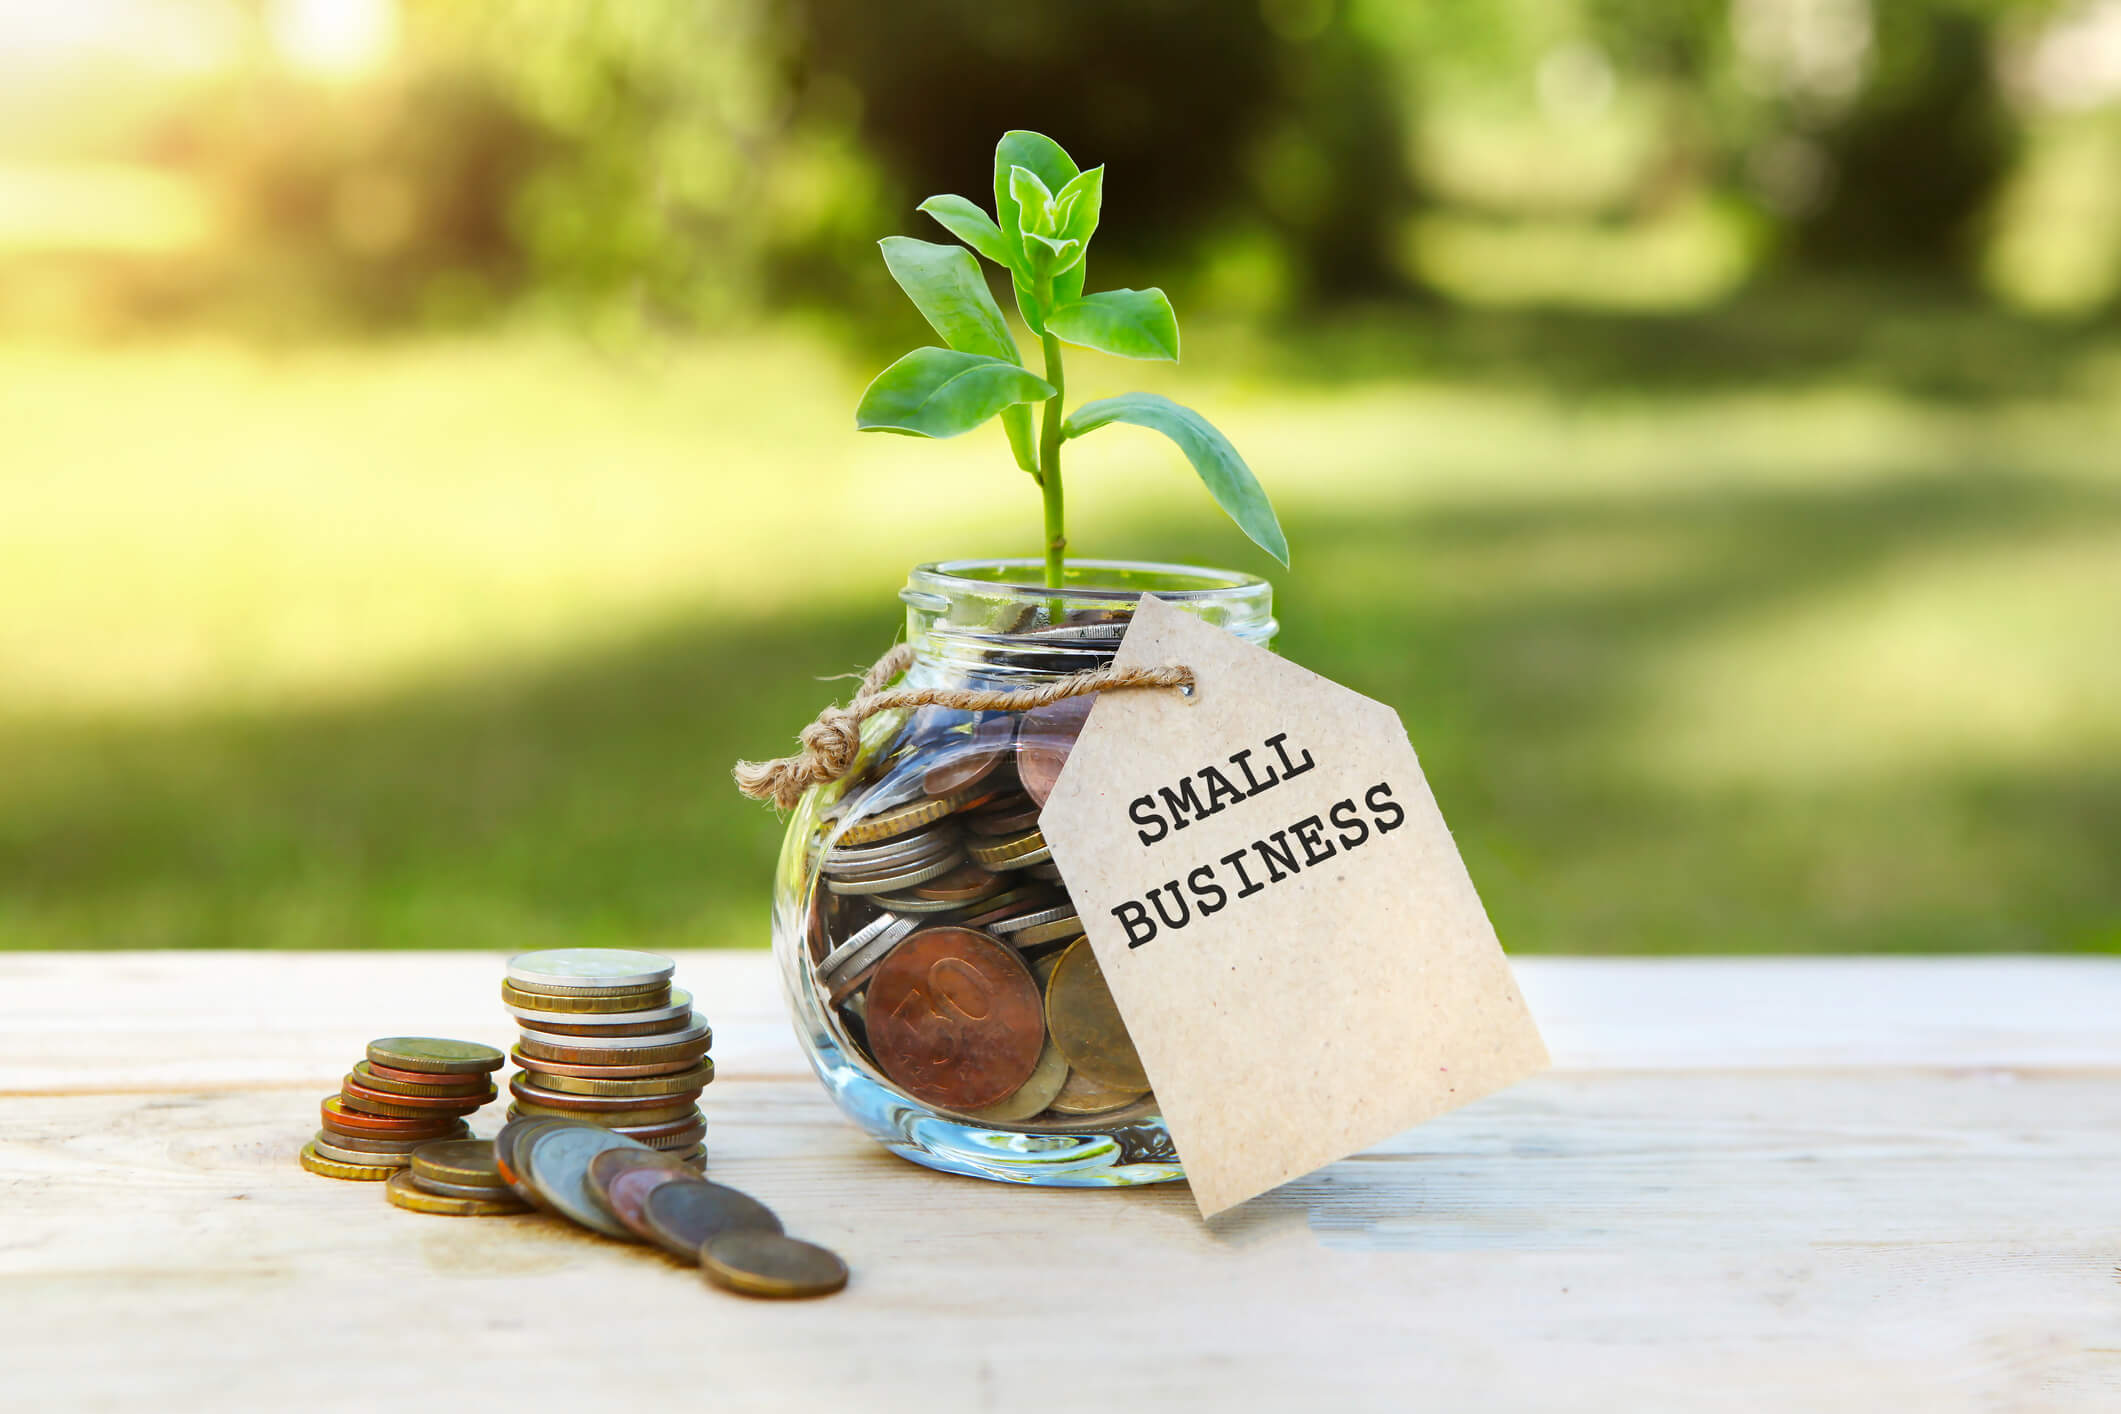 small business financing - Complete Controller